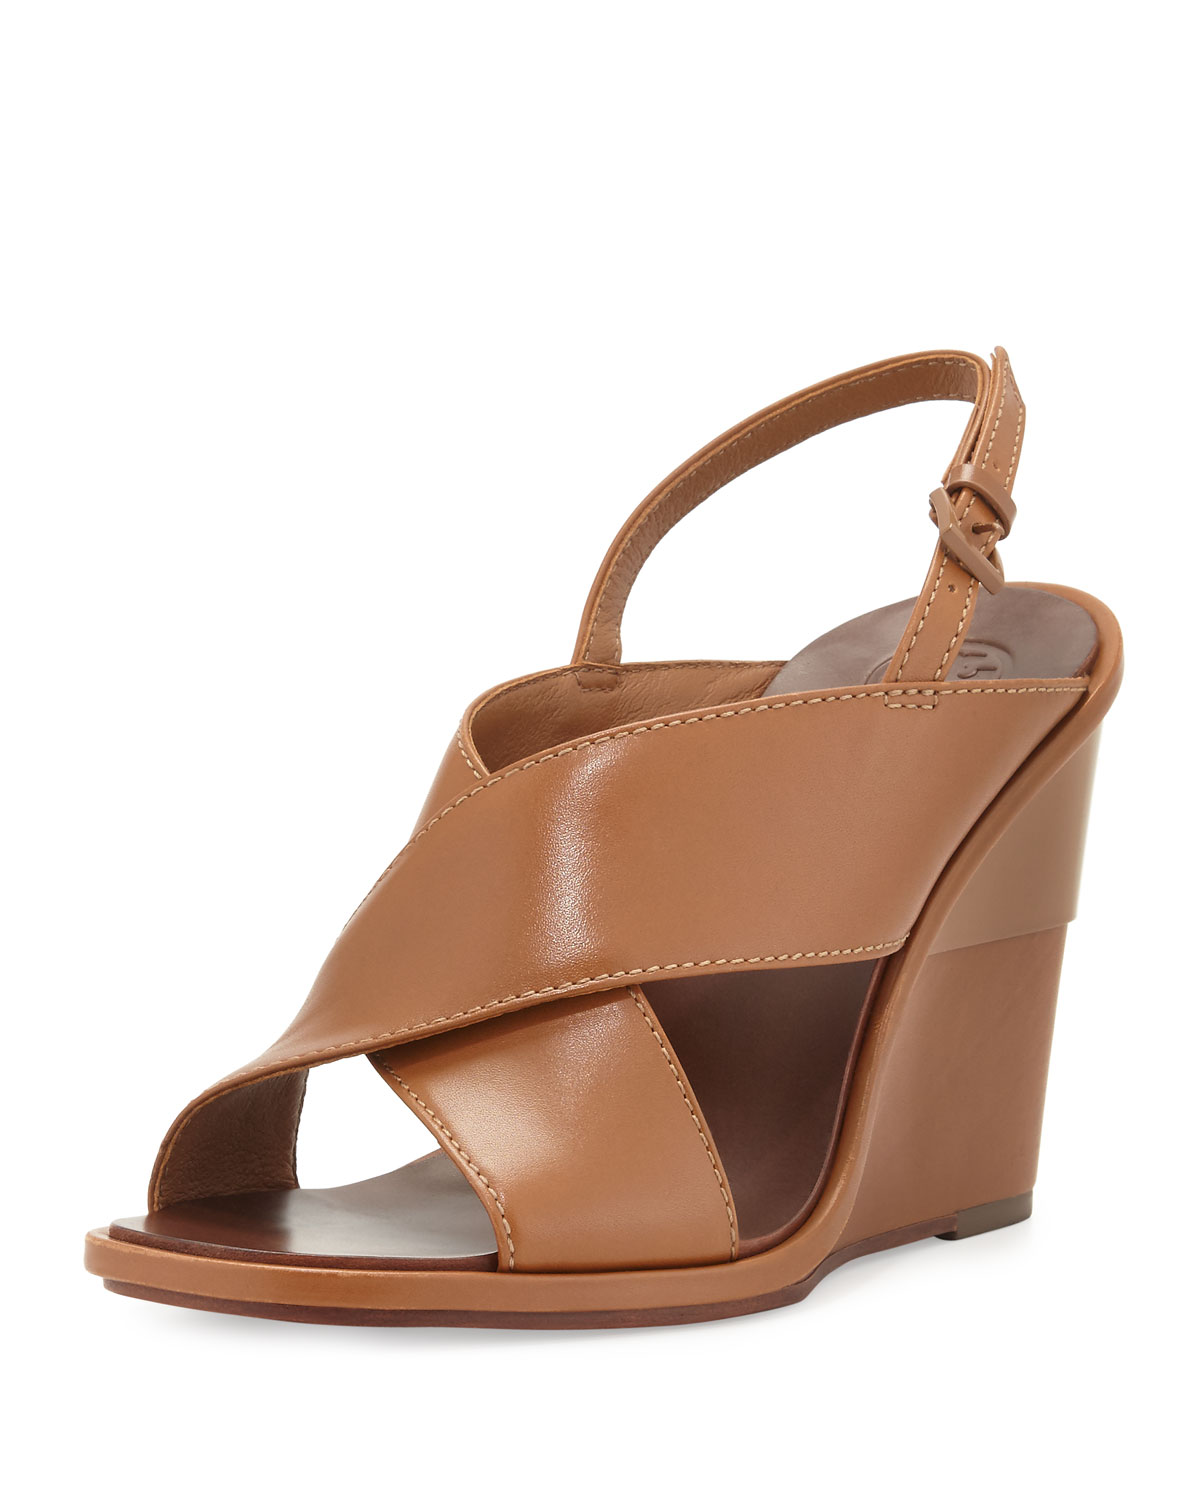 b593638958c42 Tory Burch Gabrielle Leather Wedge Sandal